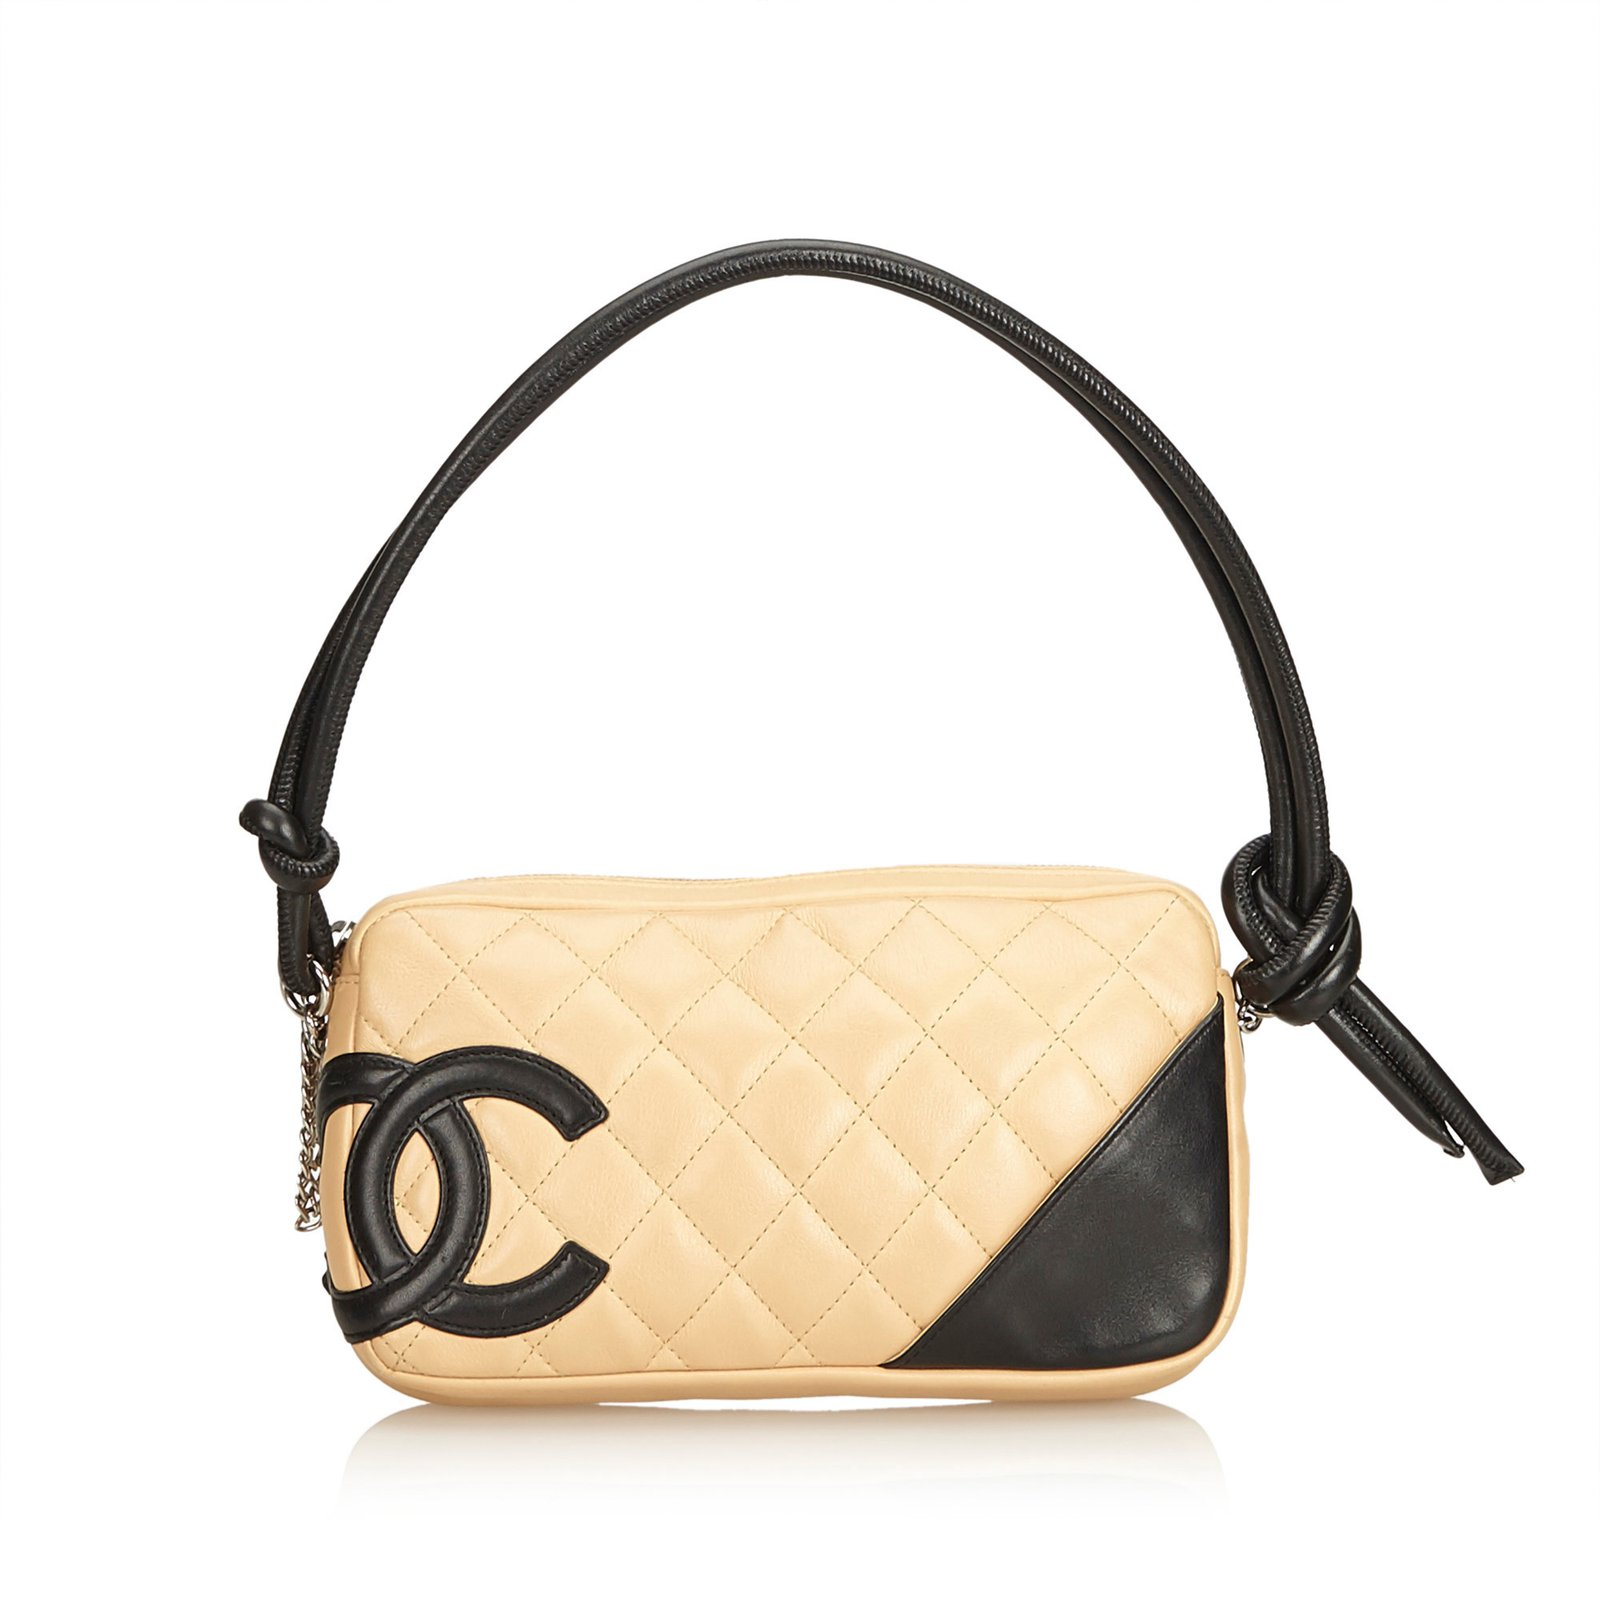 eb28e7c67219dc Chanel Cambon Ligne Pochette Handbags Leather Brown,Black,Beige ref.99743